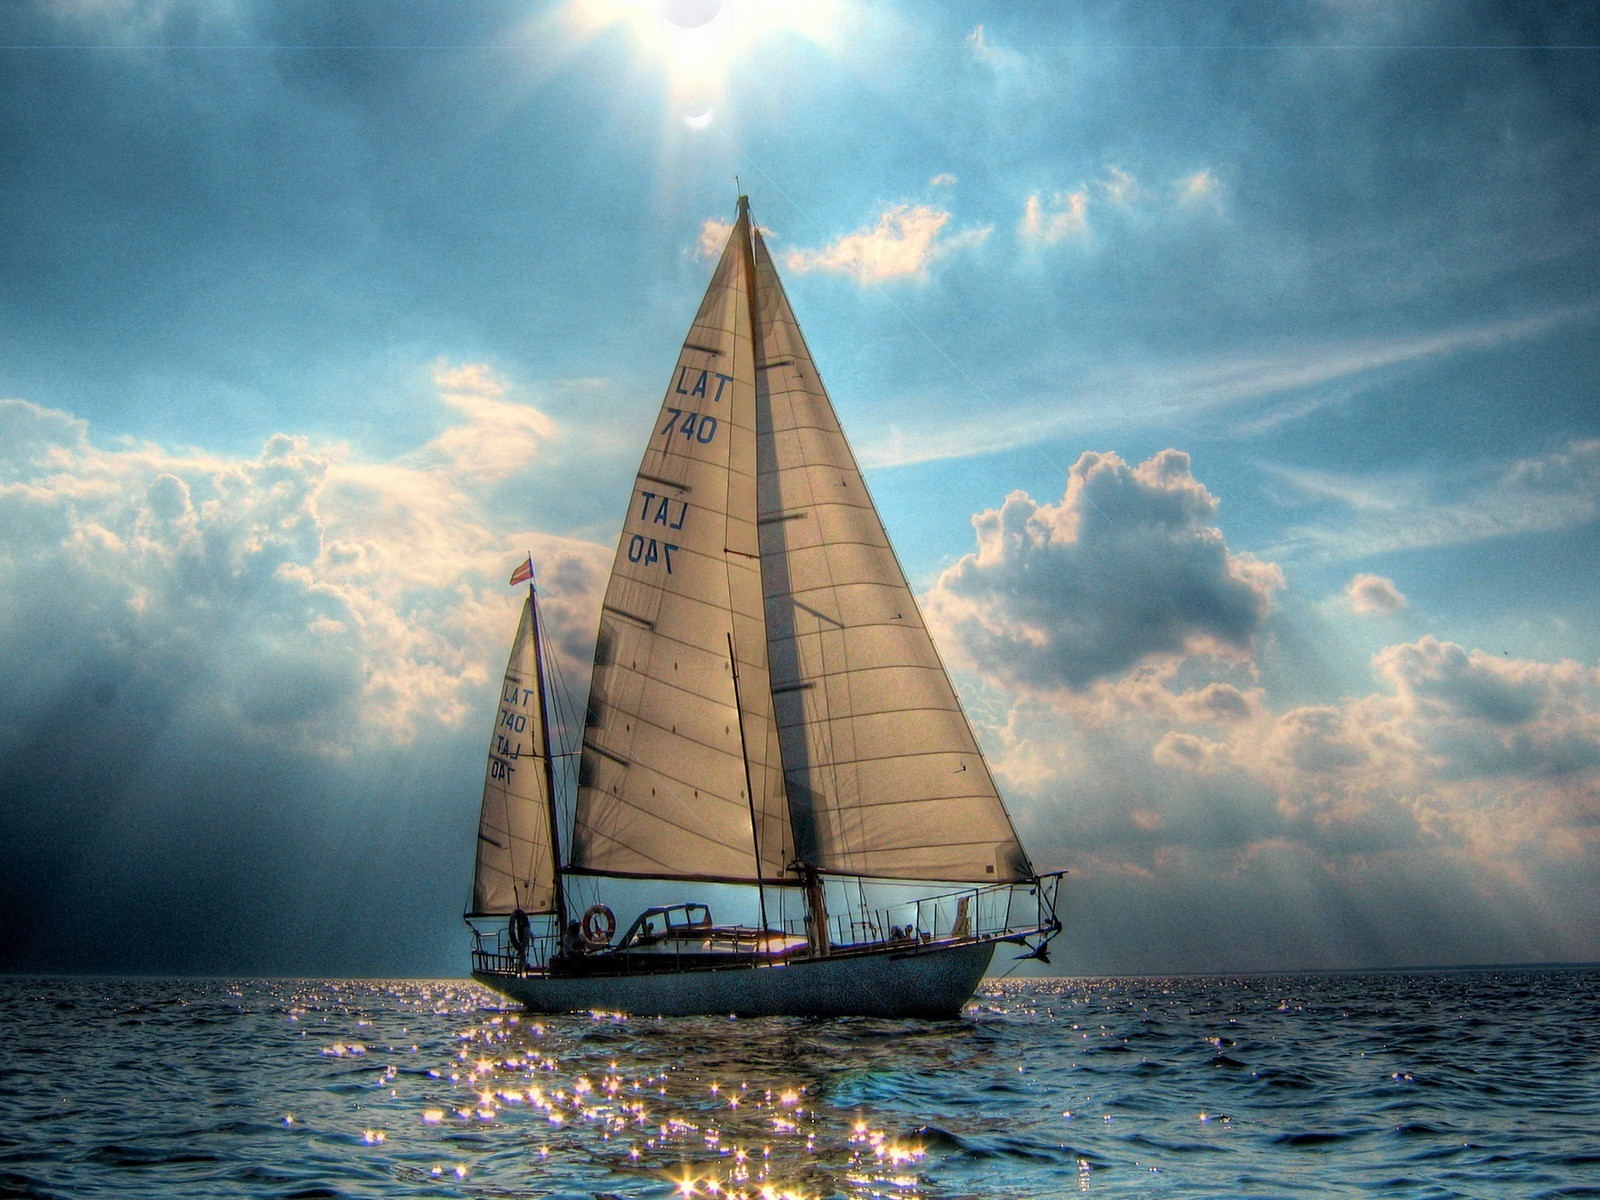 Sailing Oceans Nature Background Wallpapers on Desktop Nexus